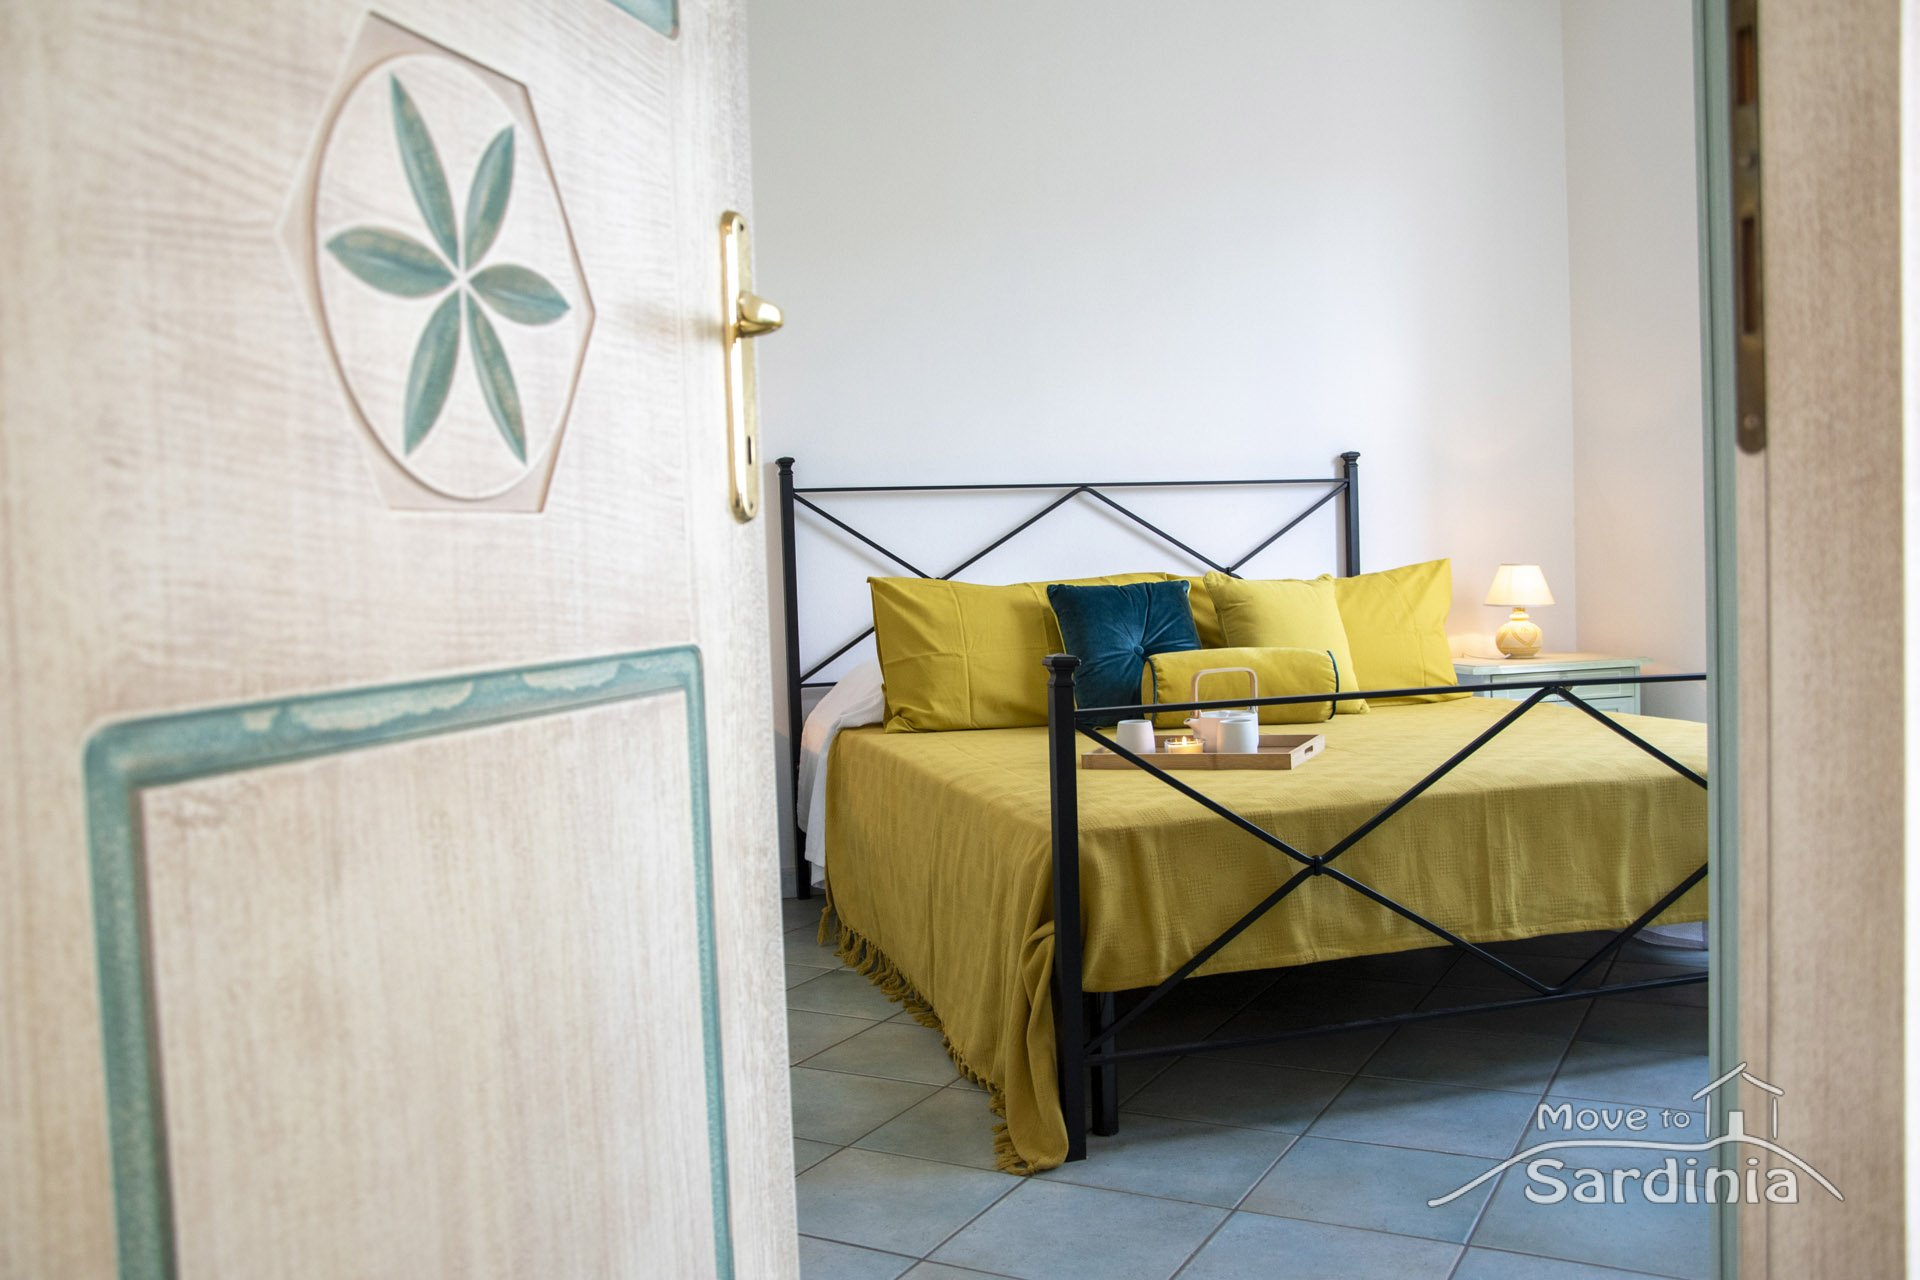 Apartment for sale in Badesi, two bedrooms, comfortable external terrace